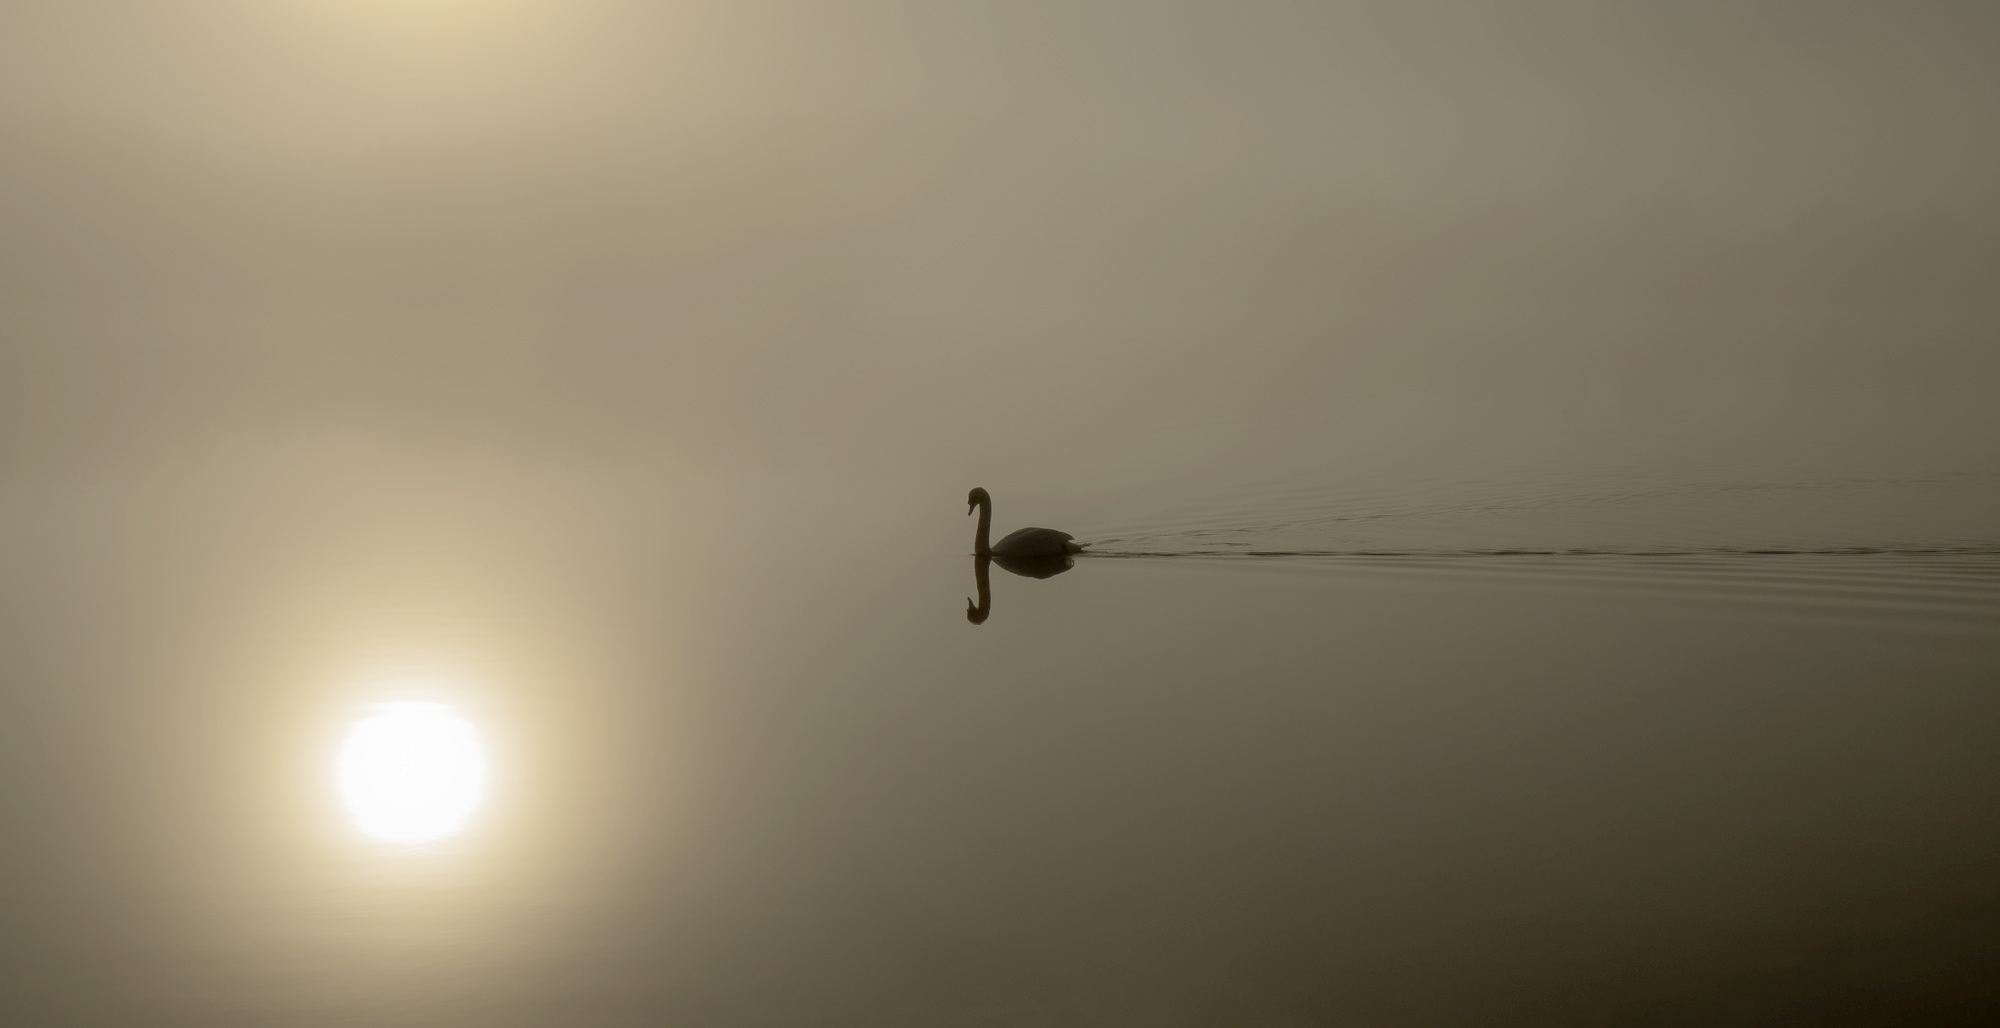 Swansong Rusky 2, Swansong Rusky 2, scene, beautiful, outline, trees, sun, backlit, mist, reflection, wake, swan, still , photo